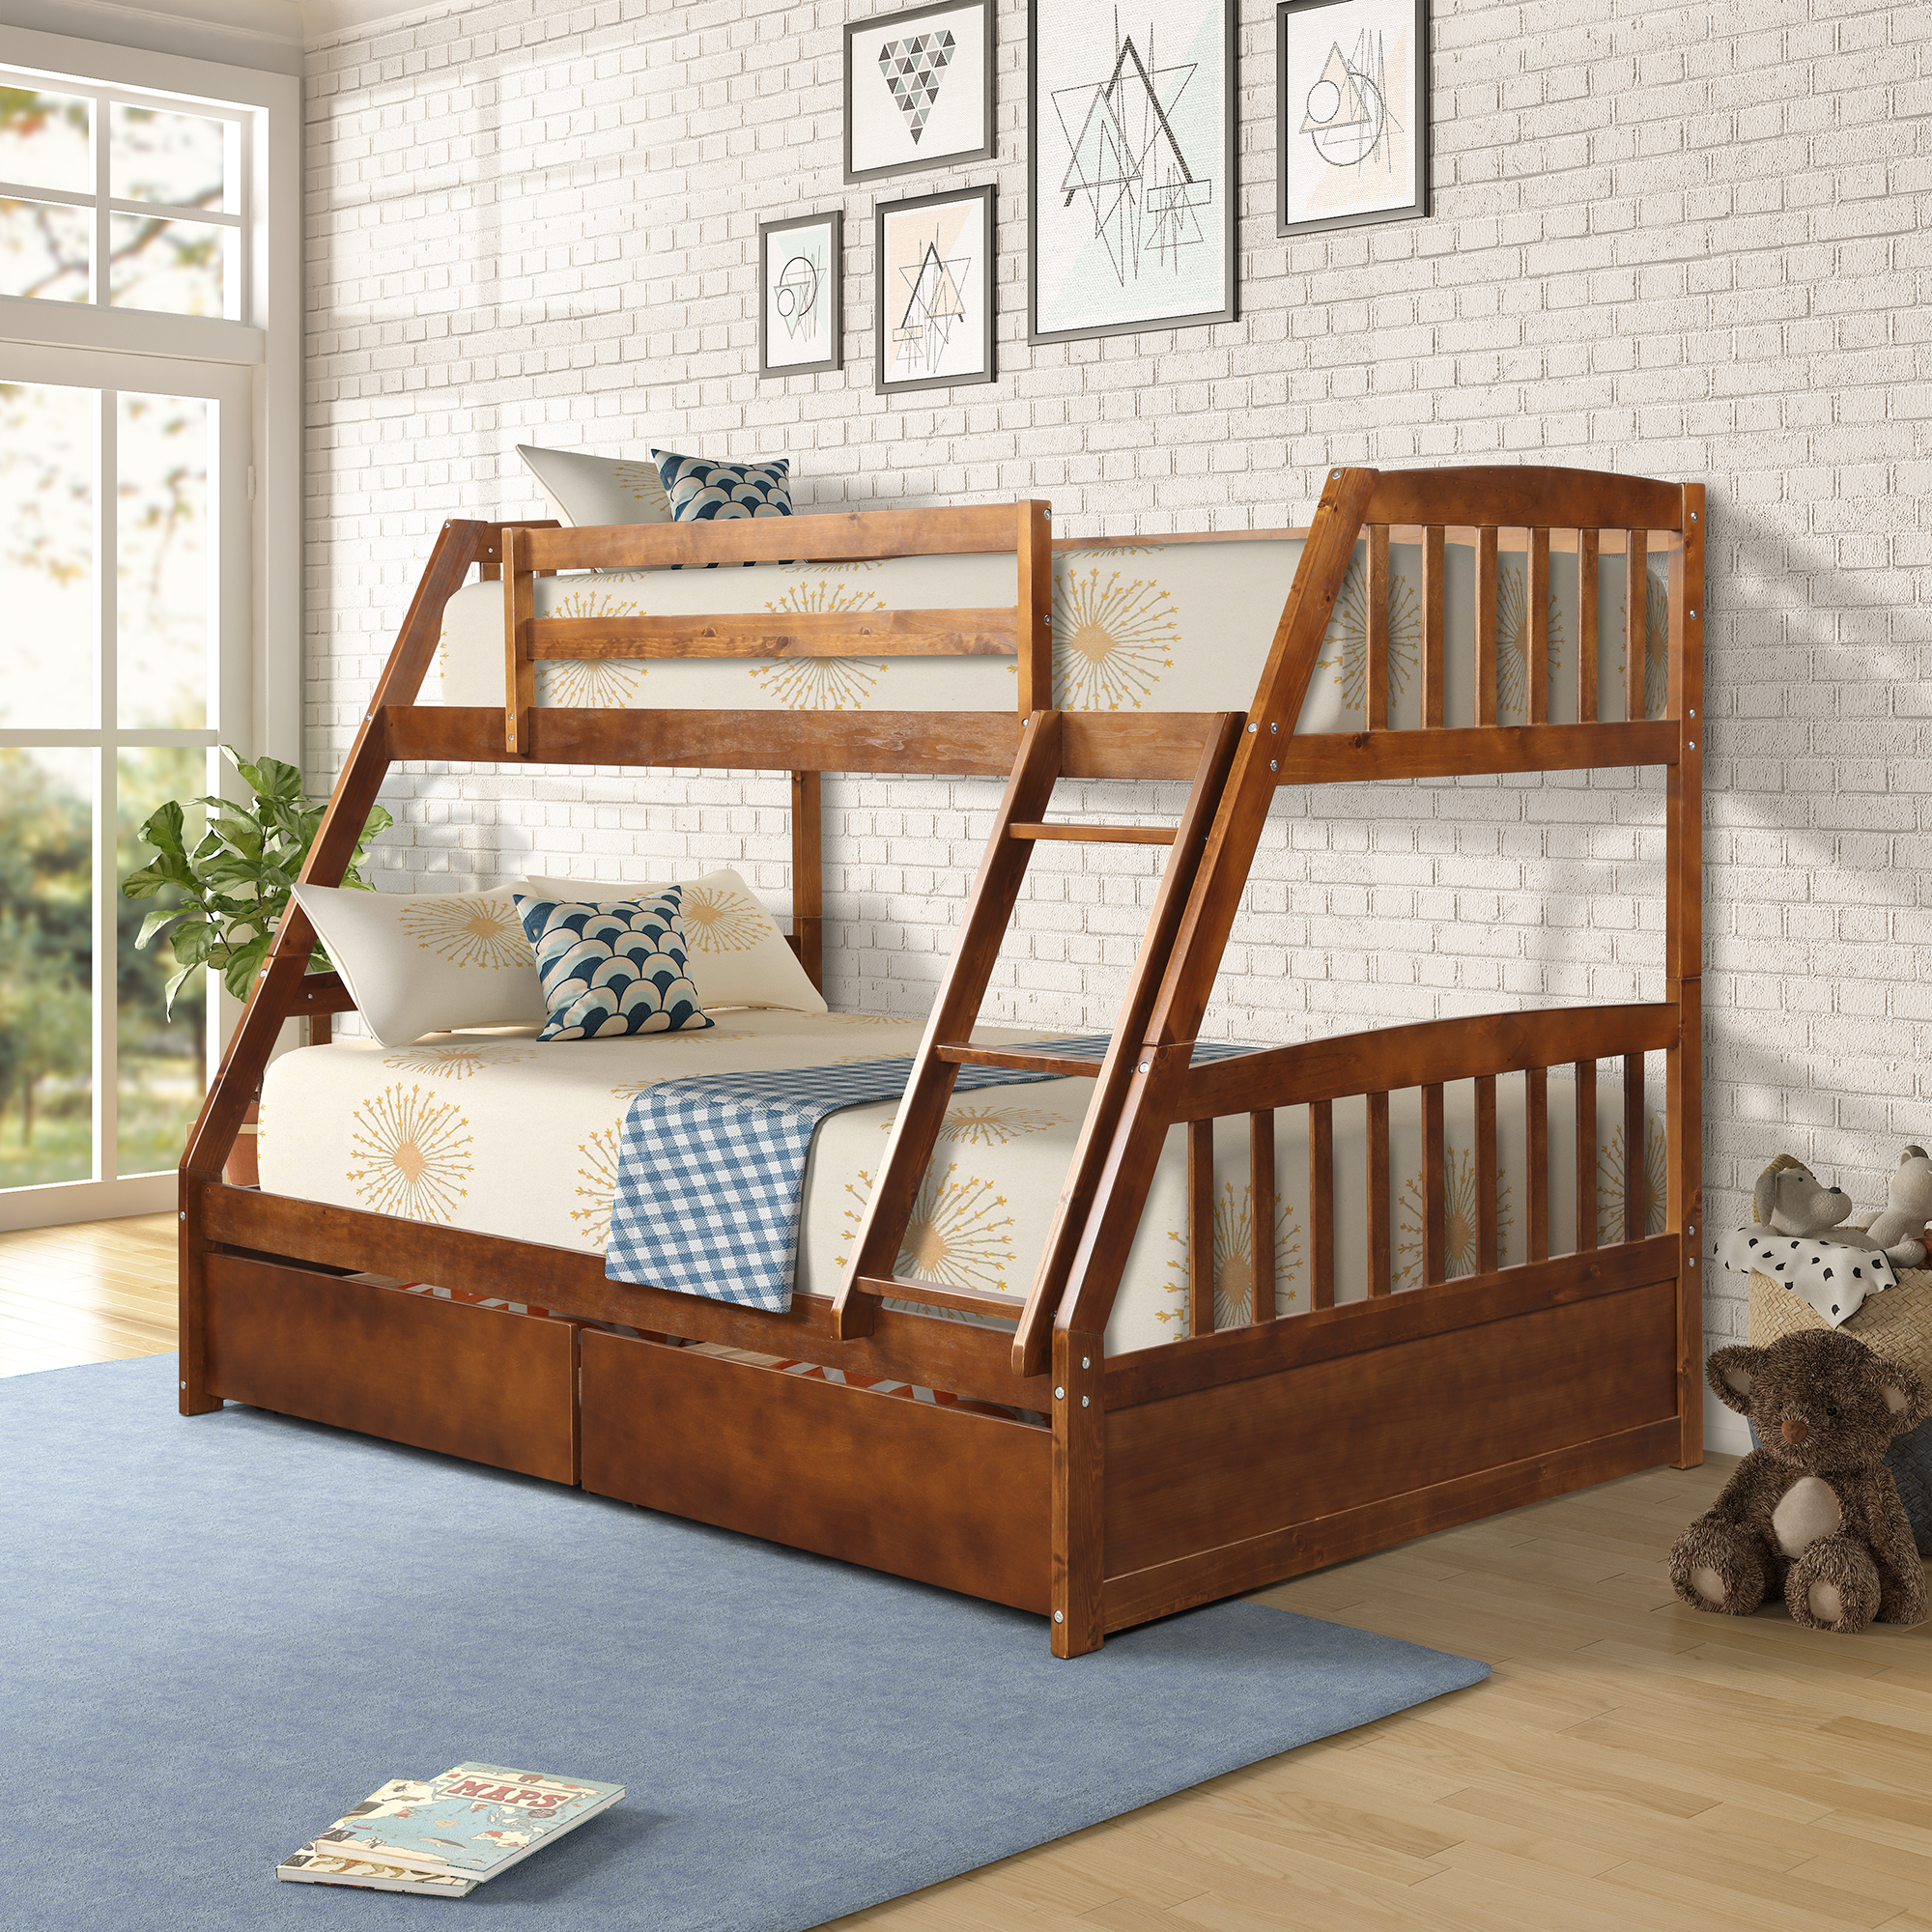 clearance twin over full bunk beds for kids solid wood on walmart bedroom furniture clearance id=85987